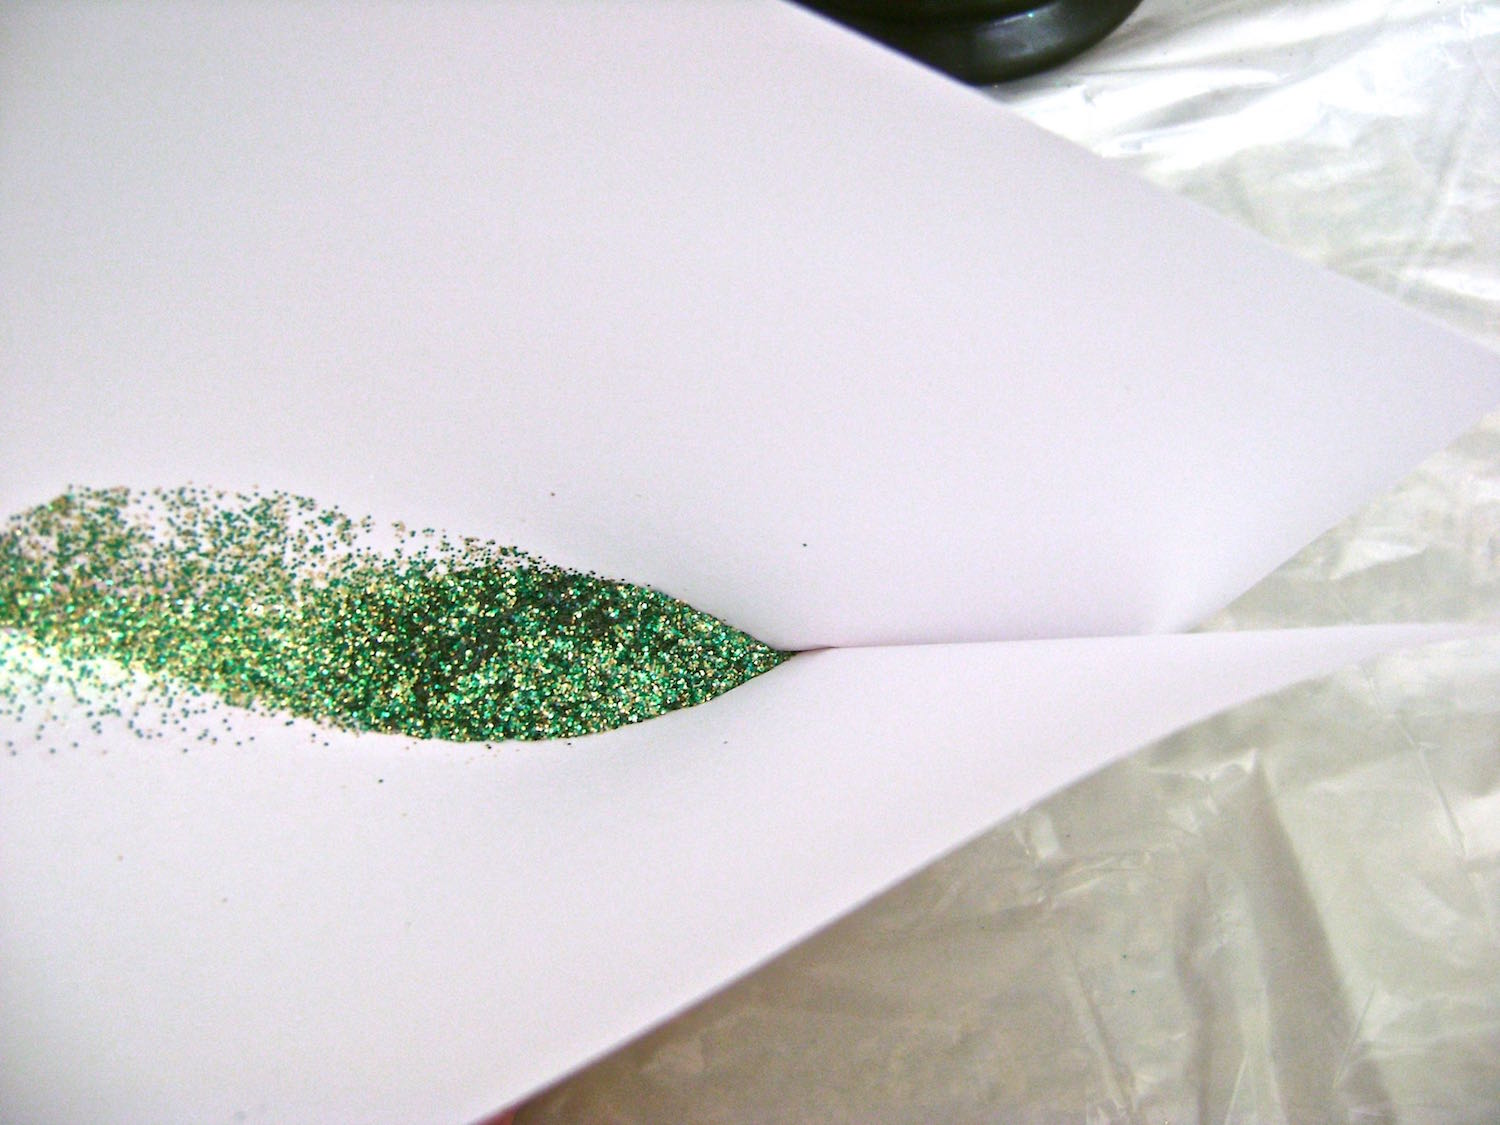 step 9 - To return glitter to the container, create a crease on one end of the paper, forming a funnel.  Hold it over the container and the glitter will slide down the crease. Coat and Create takes 24 hours to set.  Avoid touching the glitter areas as you continue working.